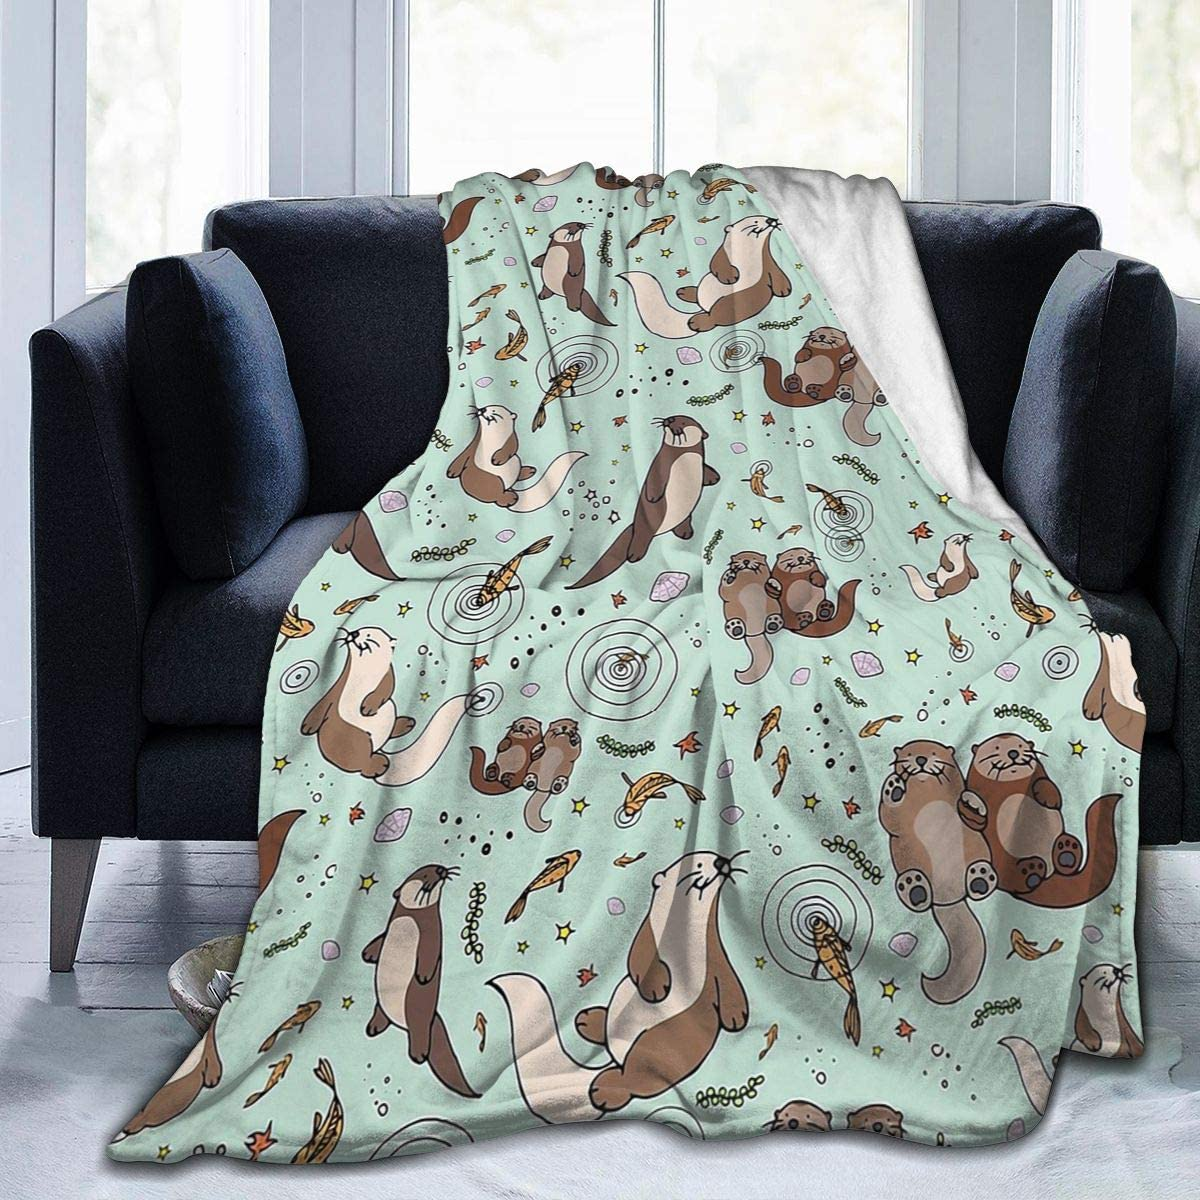 outlet Spring new work Guo Qiao Gmamasim Home Sea Otter Blanket Flannel Fl Throw Print